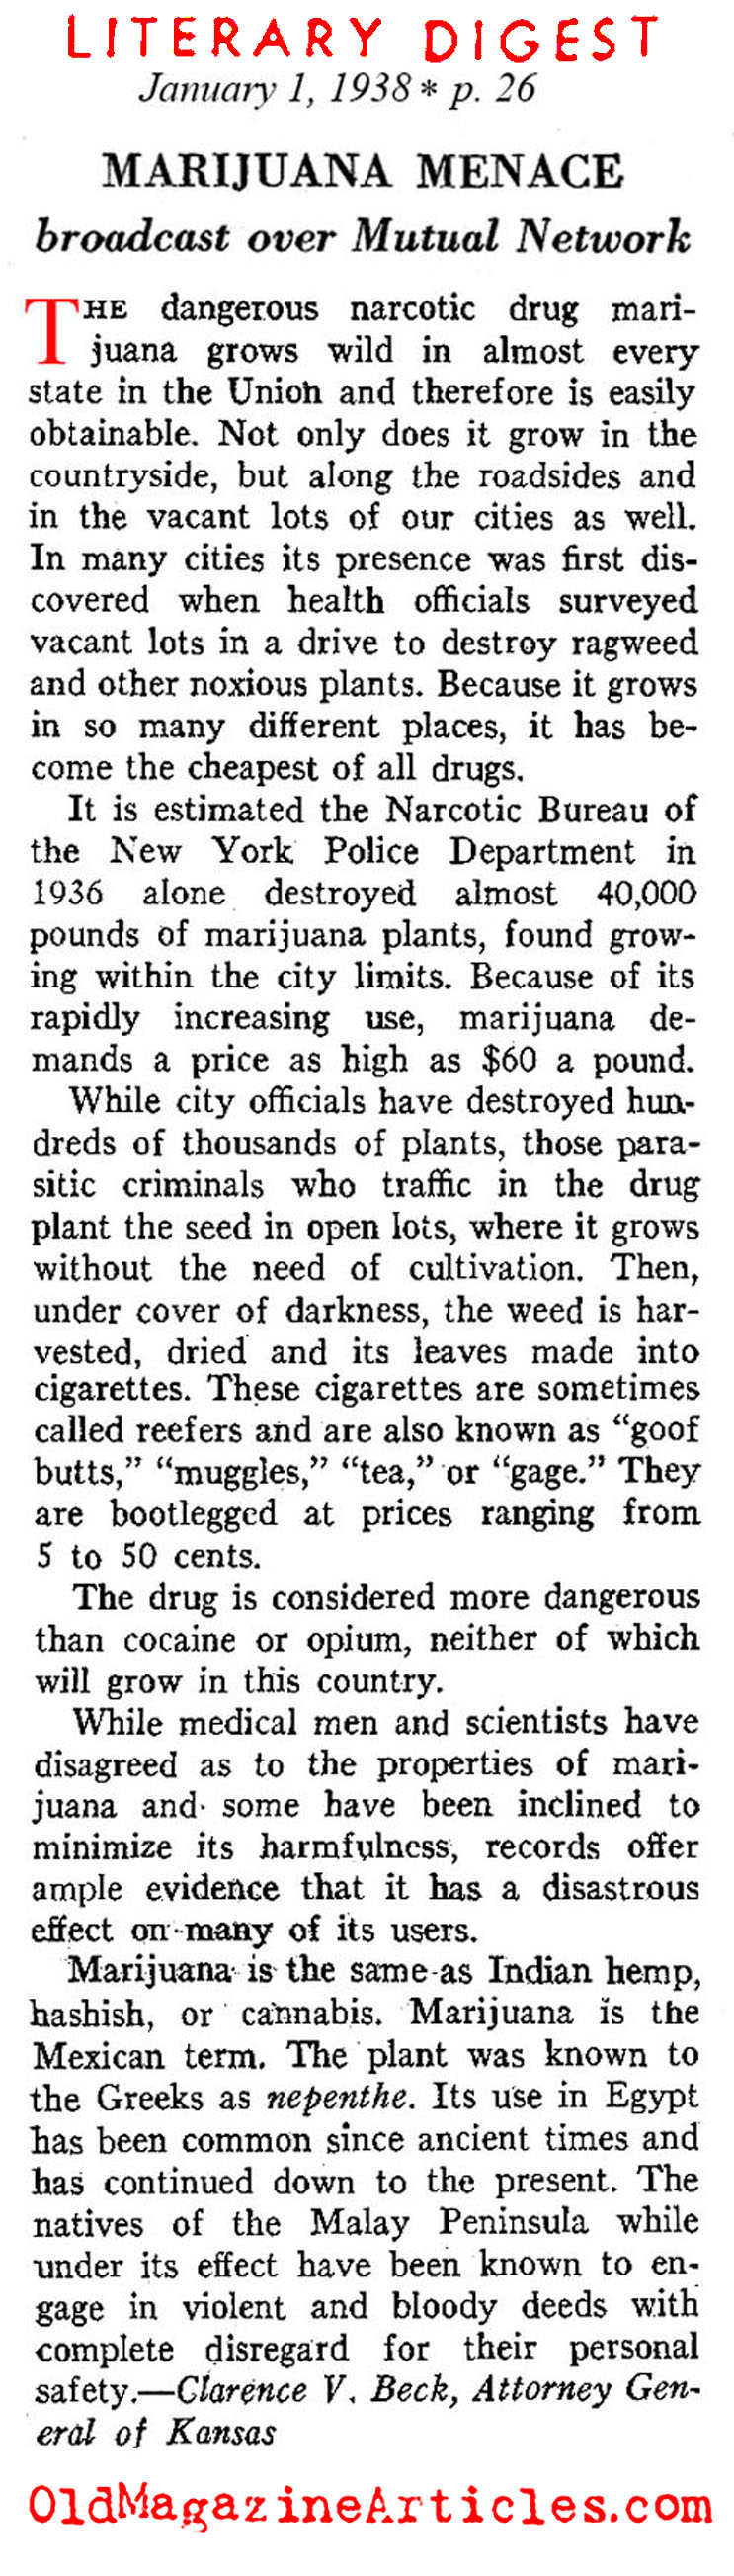 Marijuana in the Thirties (Literary Digest, 1938)